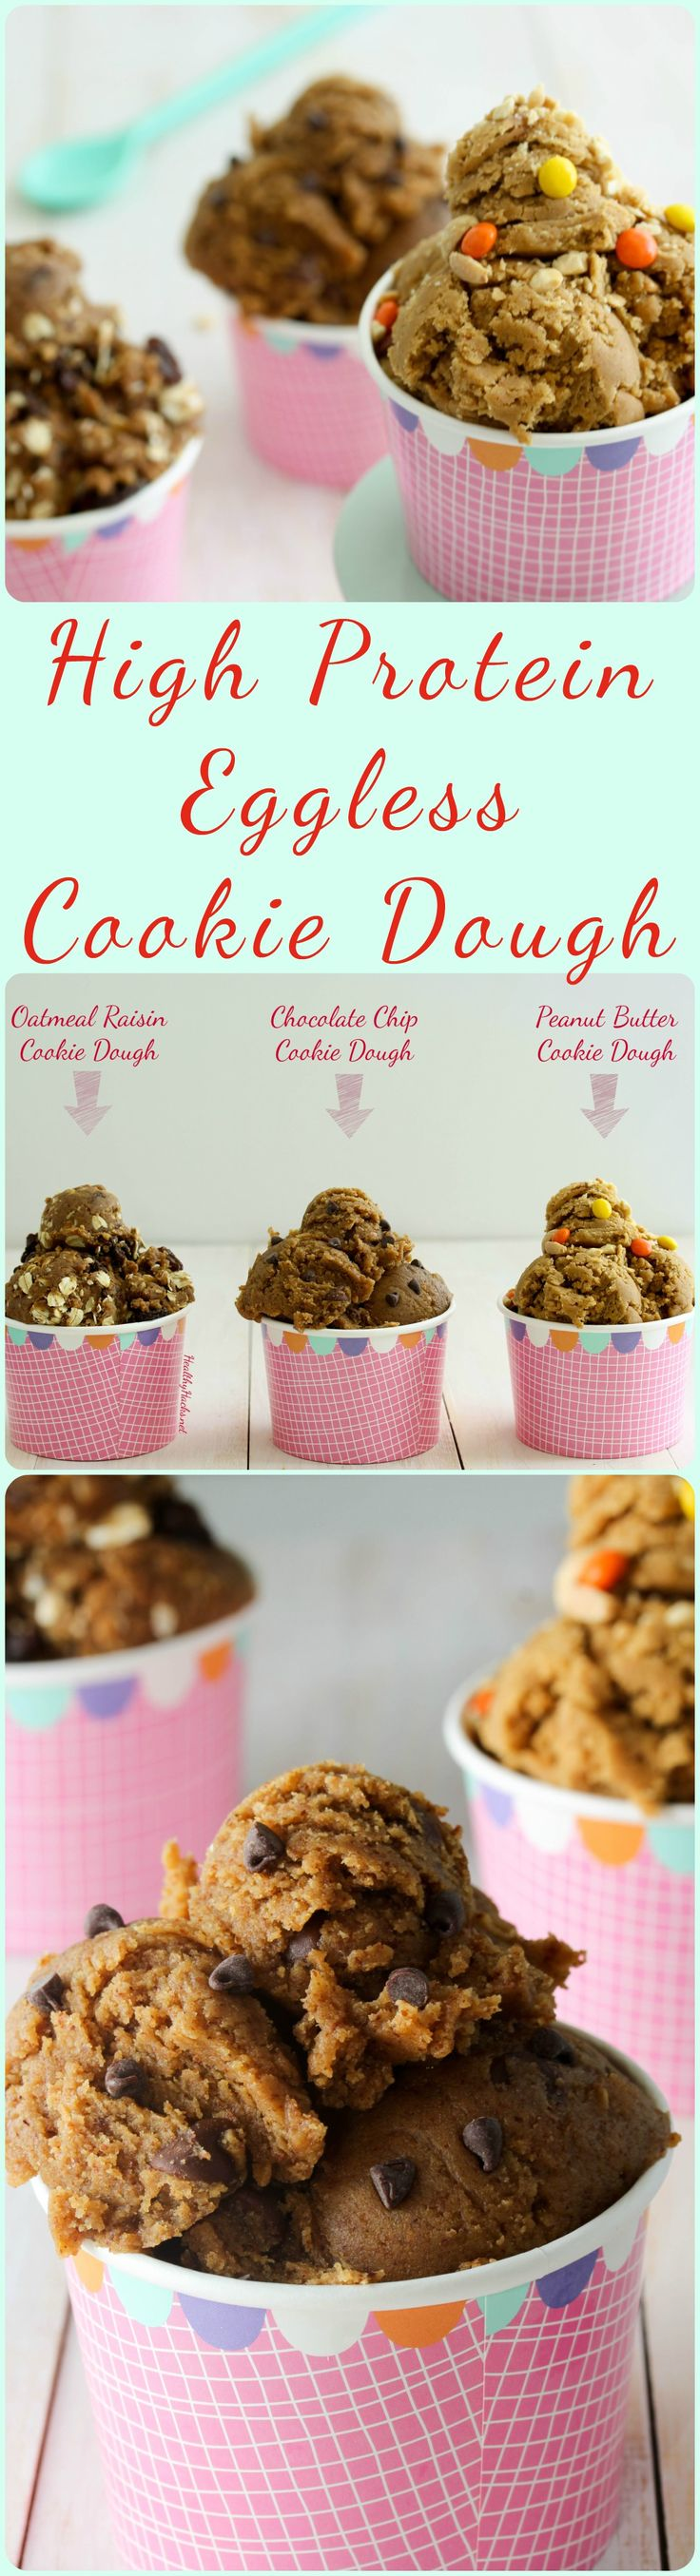 Edible Eggless Cookie Dough - 3 flavors! High Protein, Low FODMAP, Vegan, Gluten Free